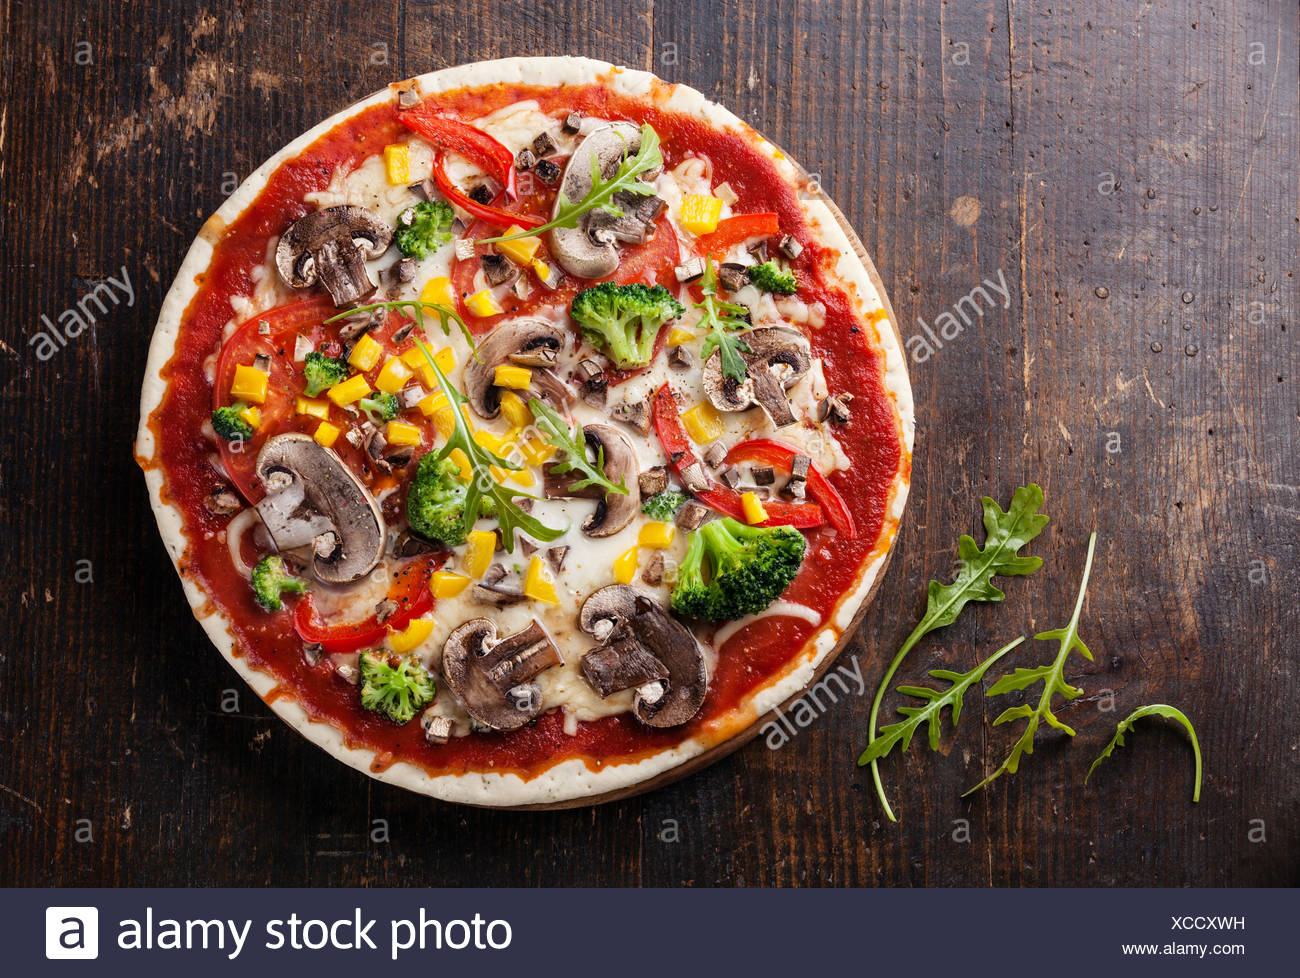 Vegetarian pizza with mushrooms and ruccola on wooden table - Stock Image